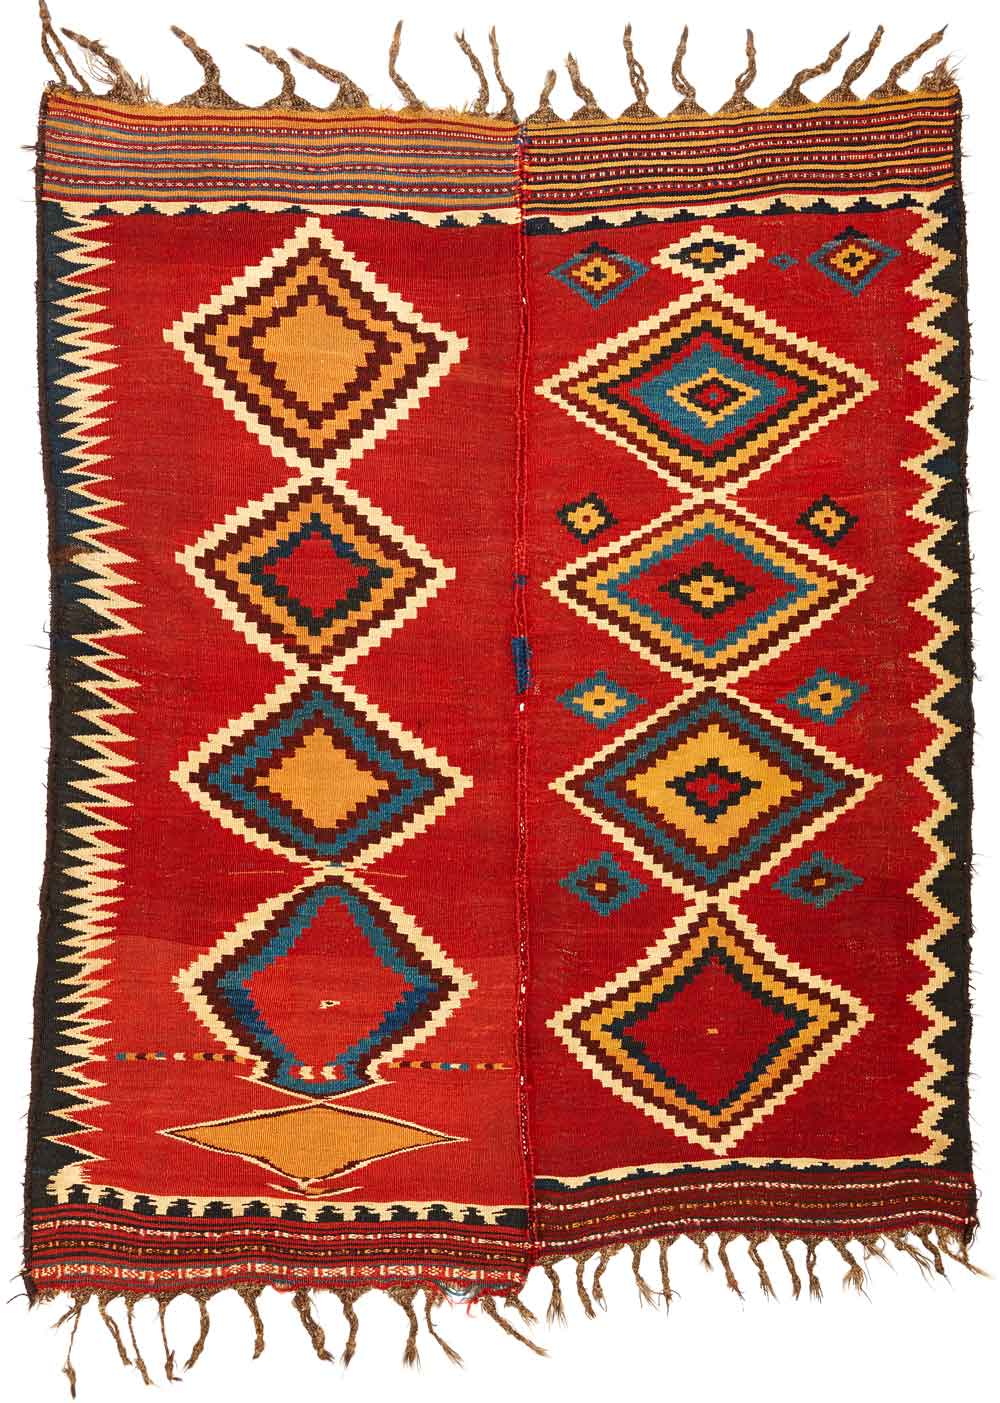 Kilim (made from two parts), late 19th century South-Persia, Kohgilujeh Luri tribes 172 x 214 cm Neiriz Collection on view in 100 Kilims at Halle